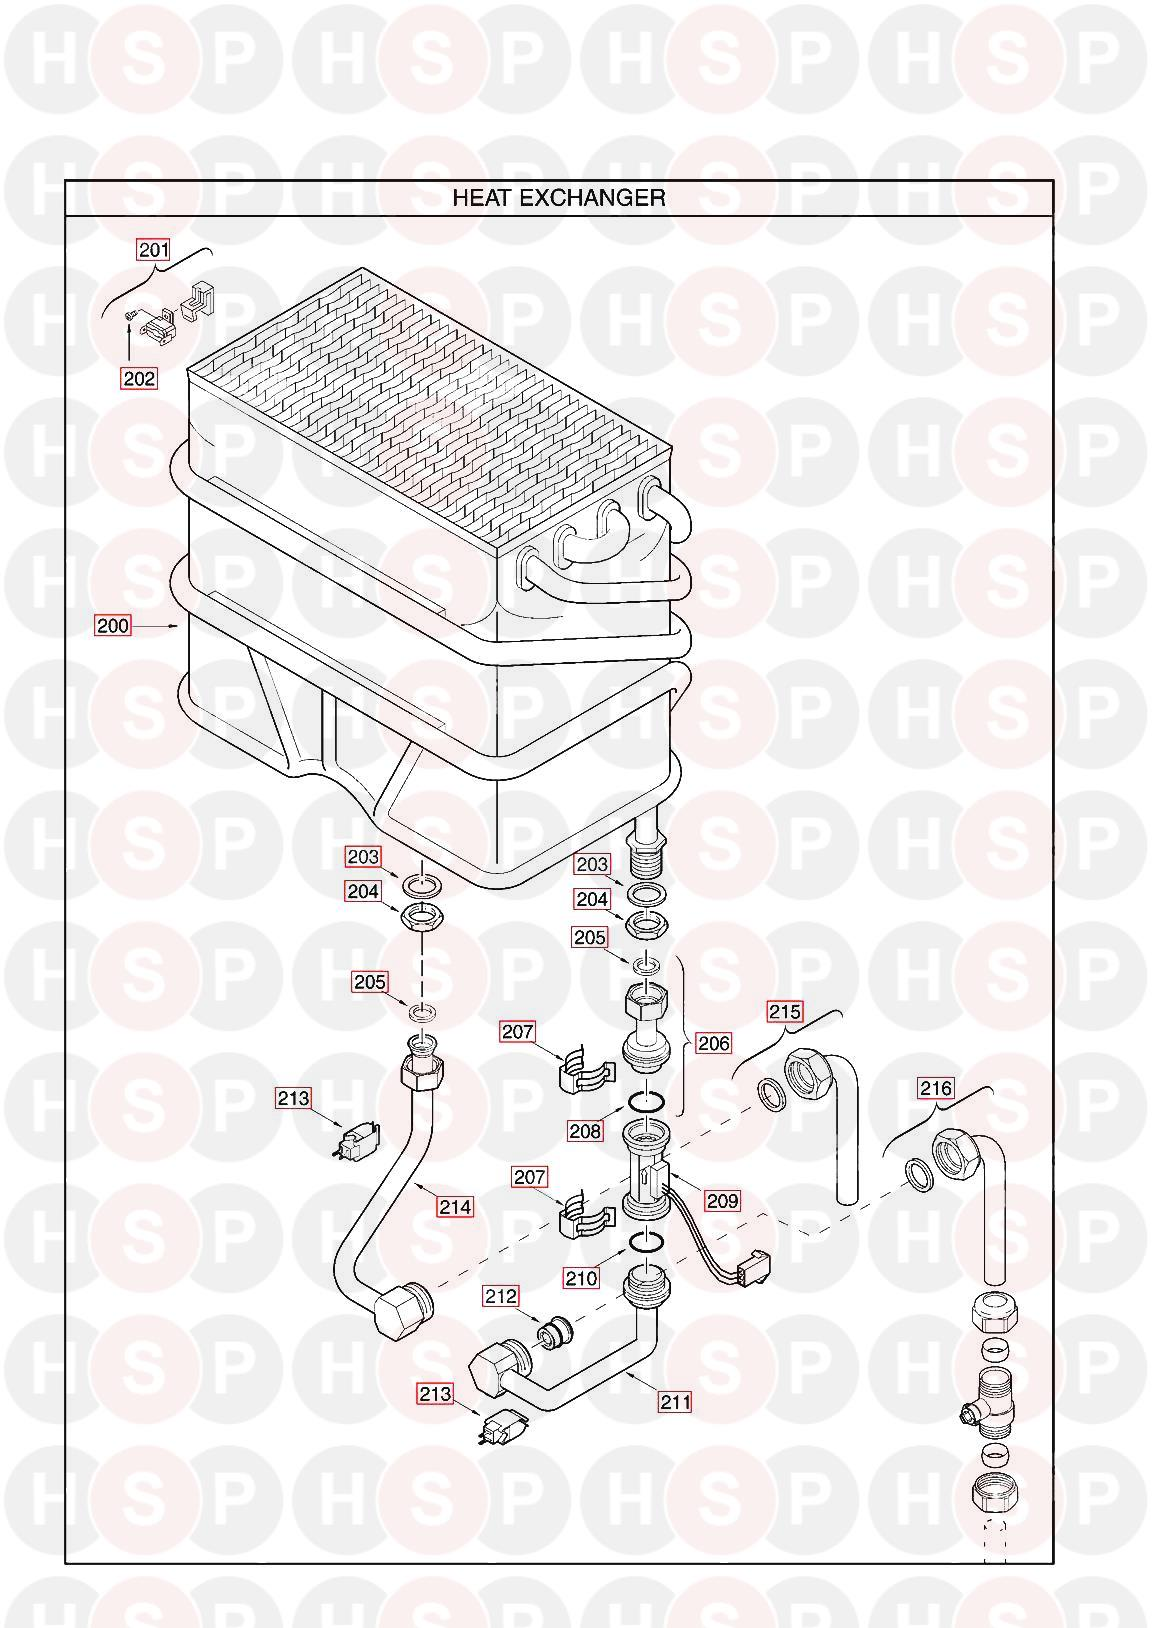 Main MULTIPOINT FF WATER HEATER (HEAT EXCHANGER) Diagram